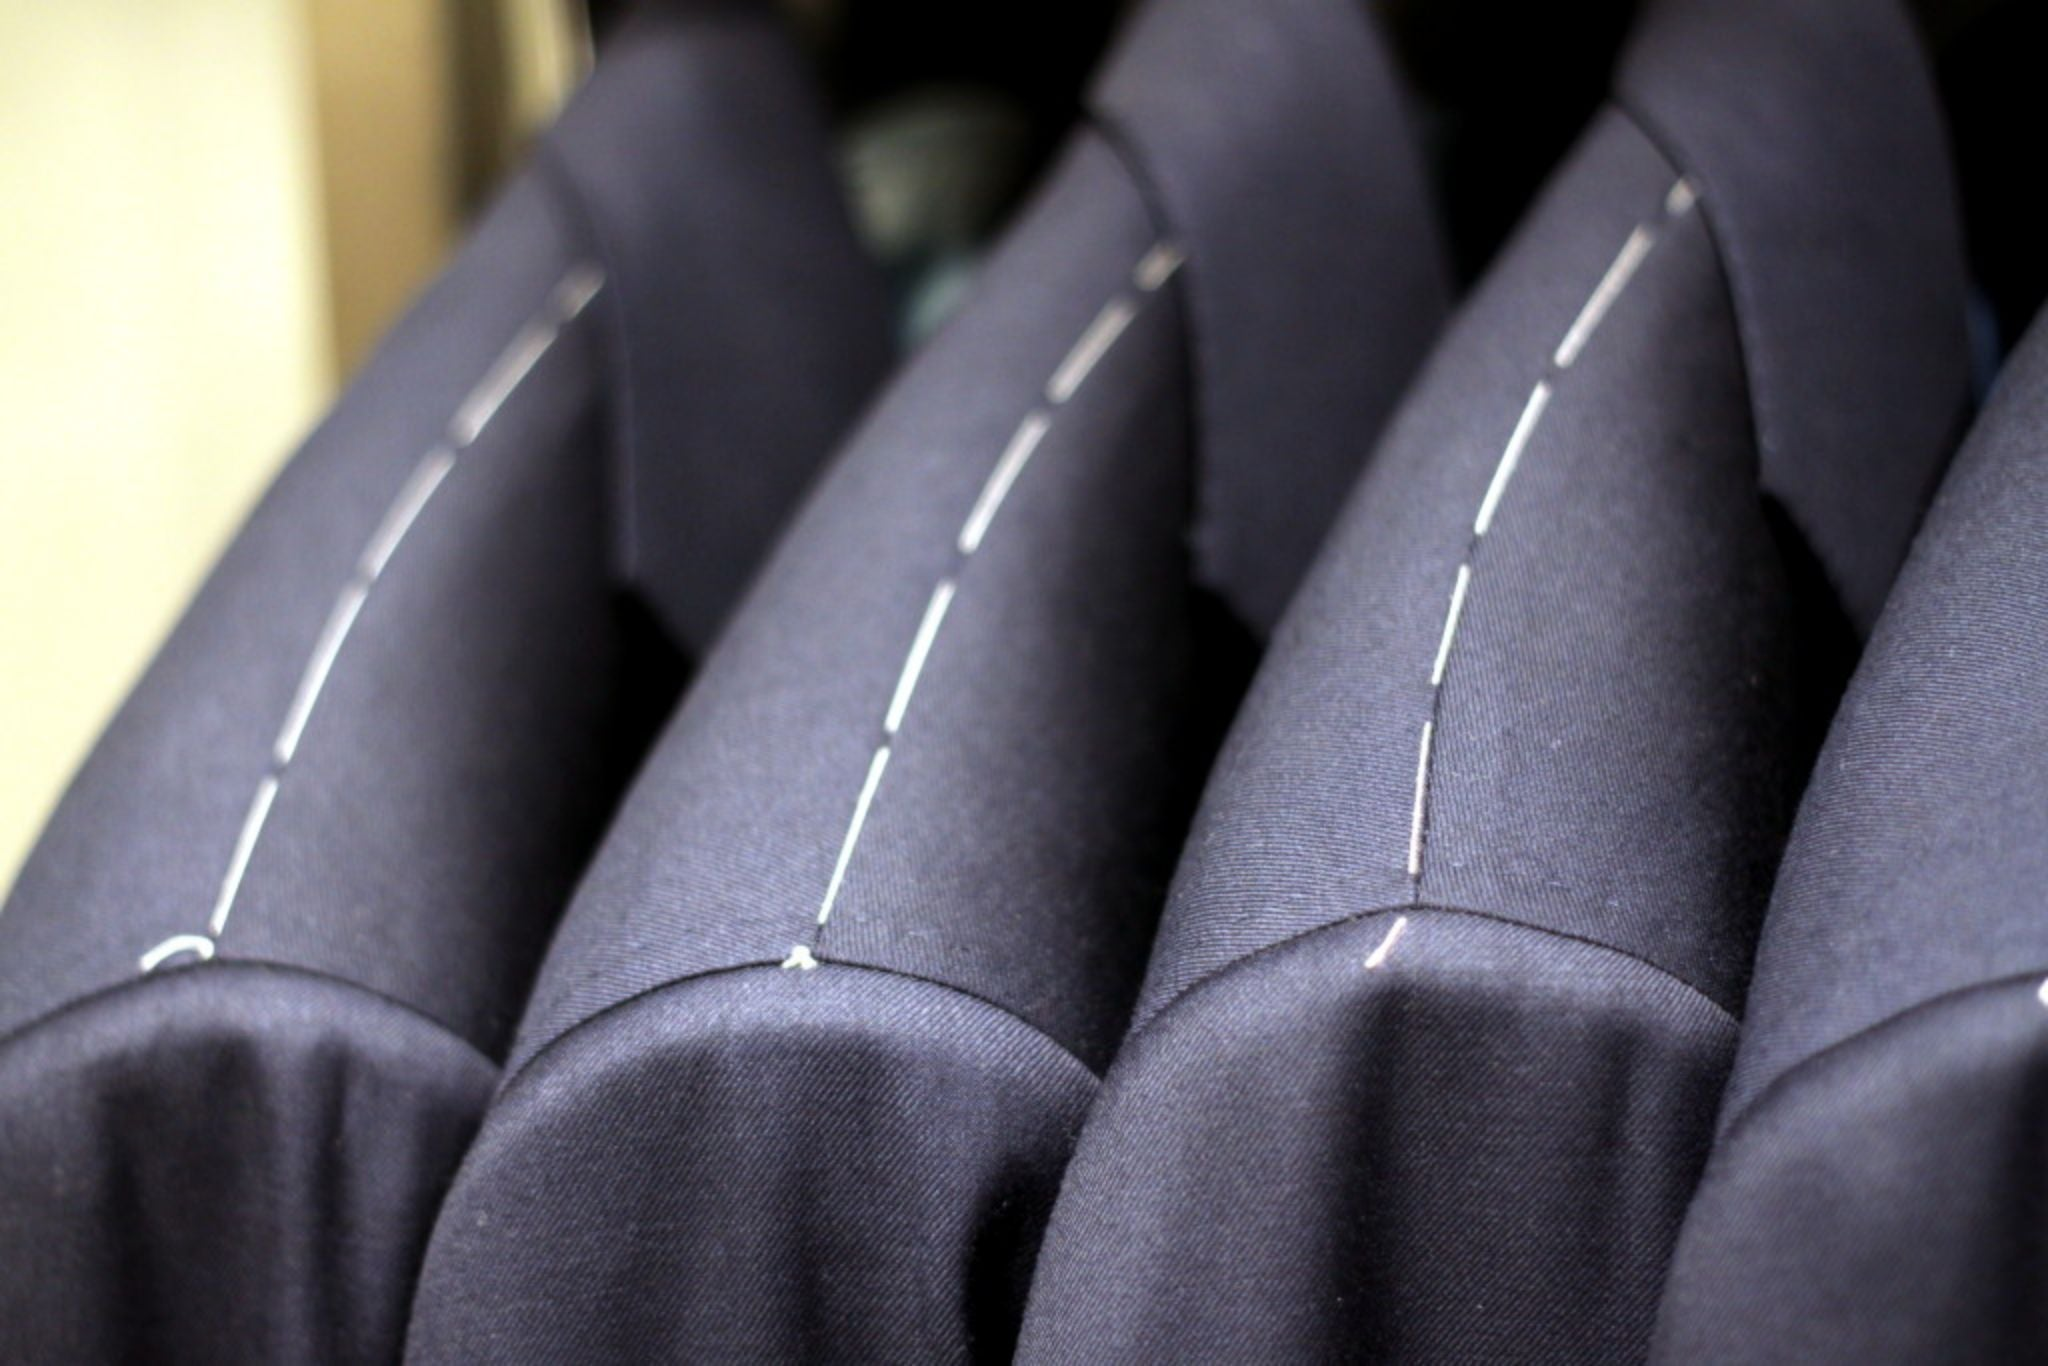 How to buy made-to-measure suit - trial suits are used to find the right size